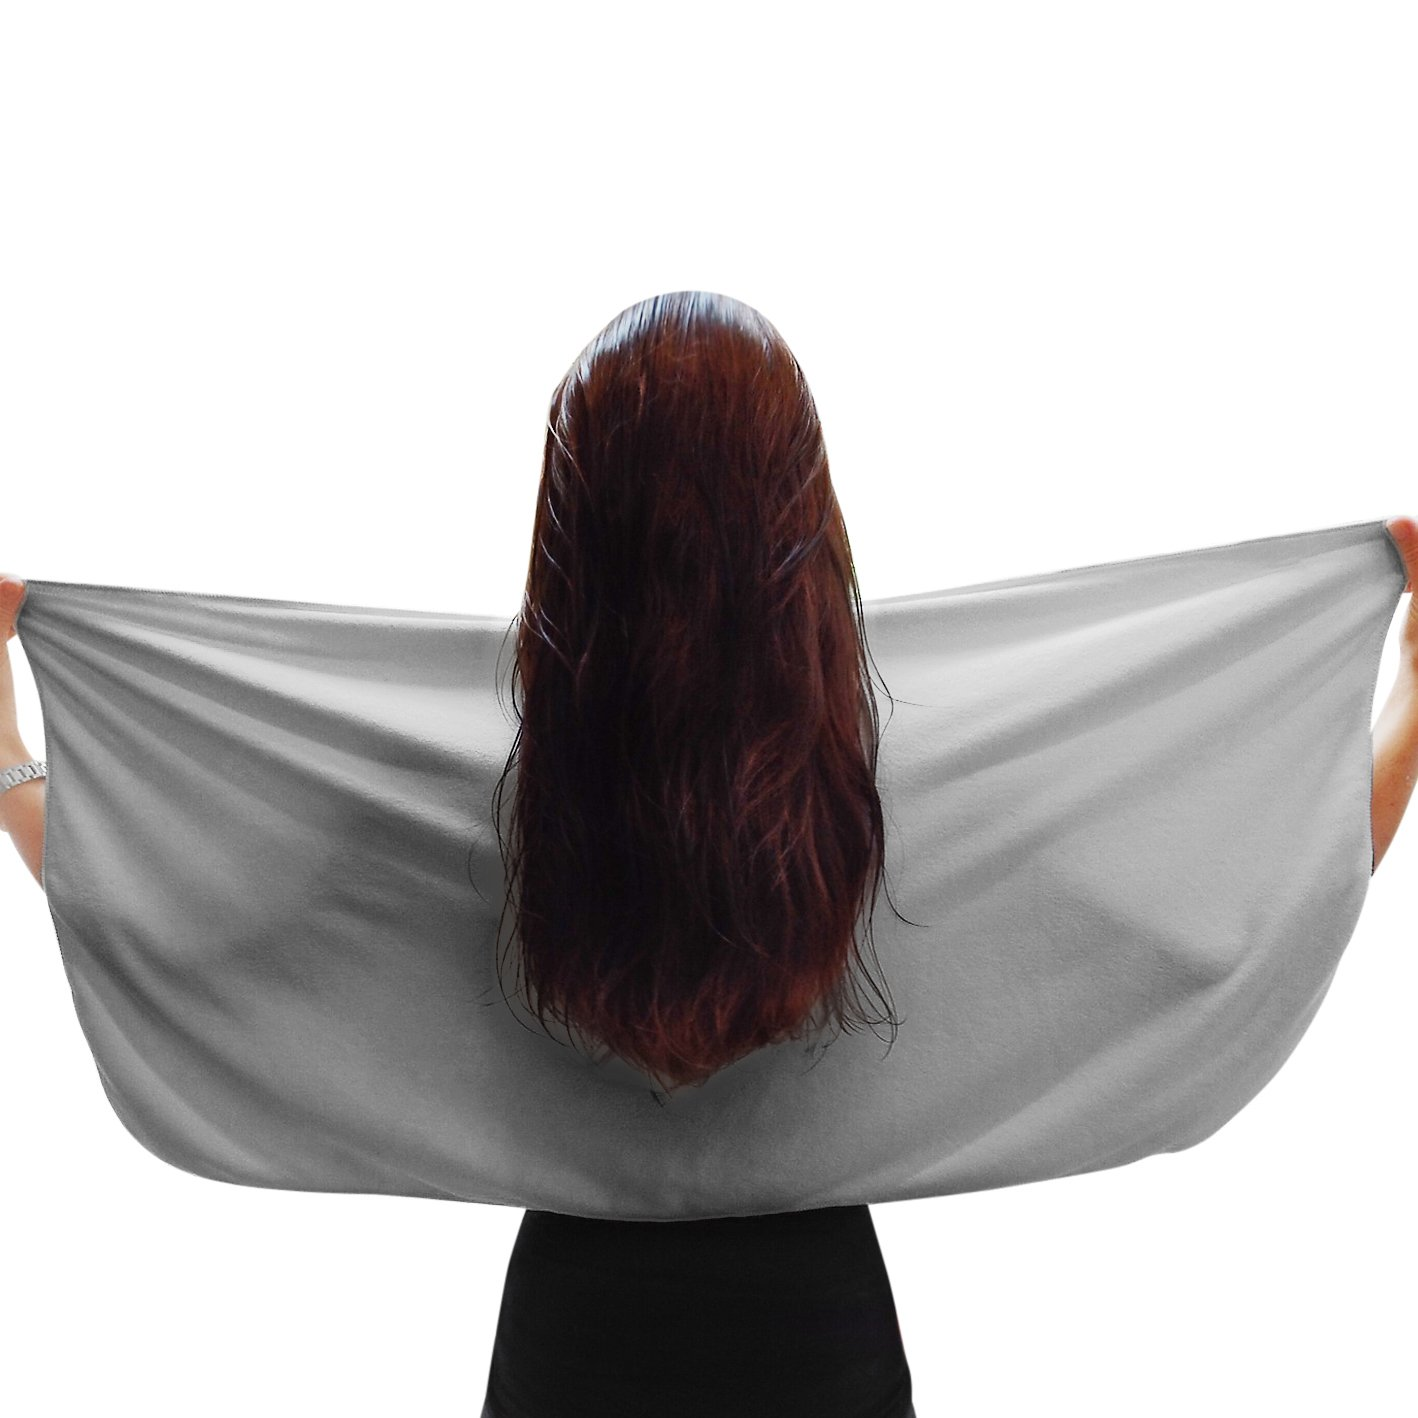 Luxe Beauty Essentials Microfiber Hair Towel For Drying Curly, Long & Thick Hair- Large 20 x 40 Grey by Luxe Beauty Essentials (Image #4)